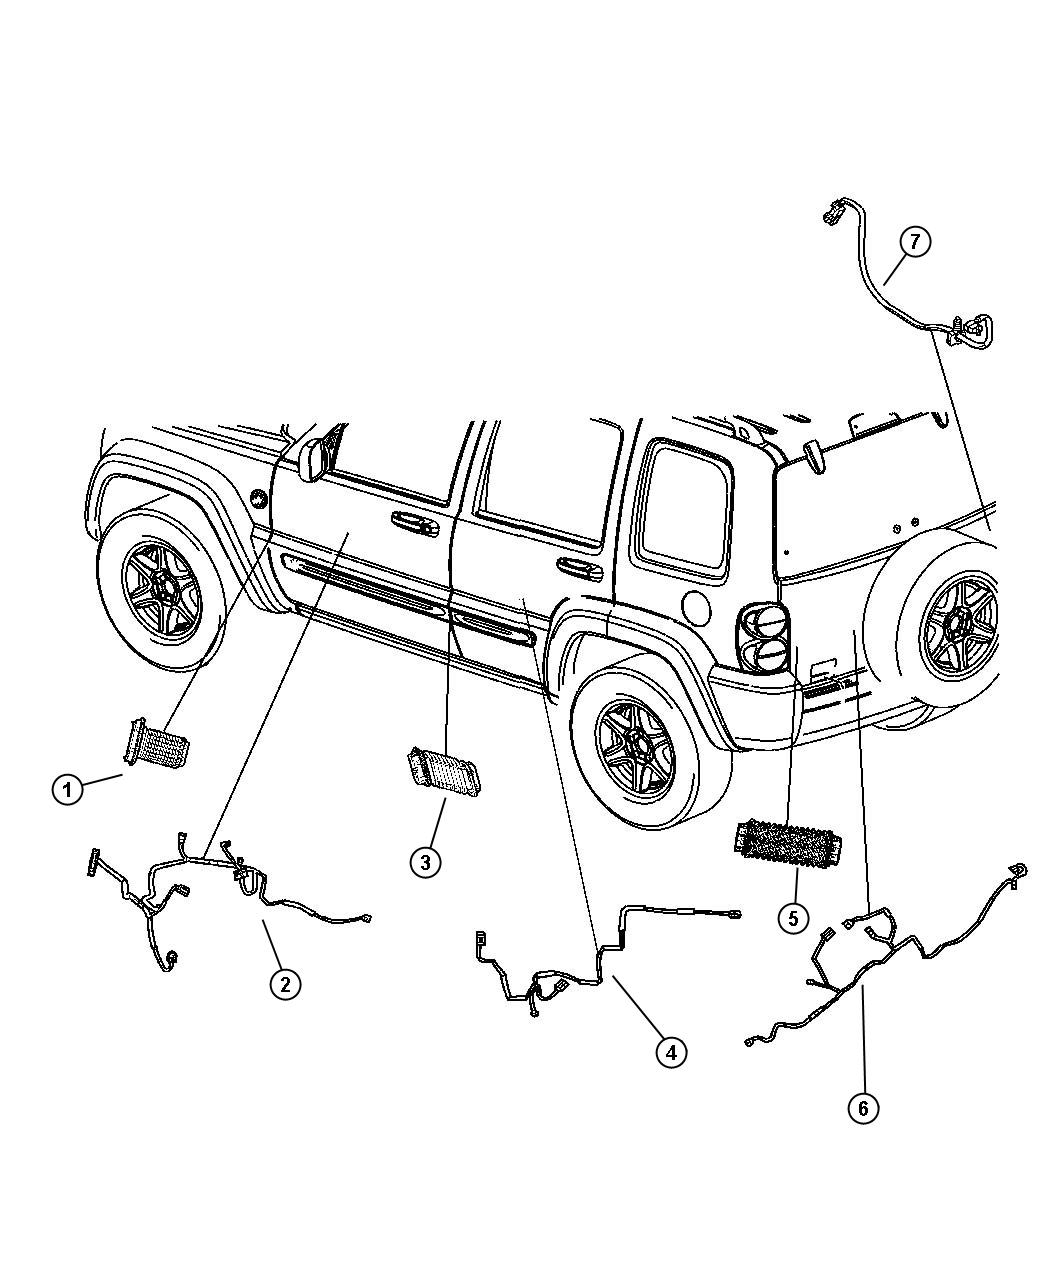 Jeep Commander Body Parts Diagram